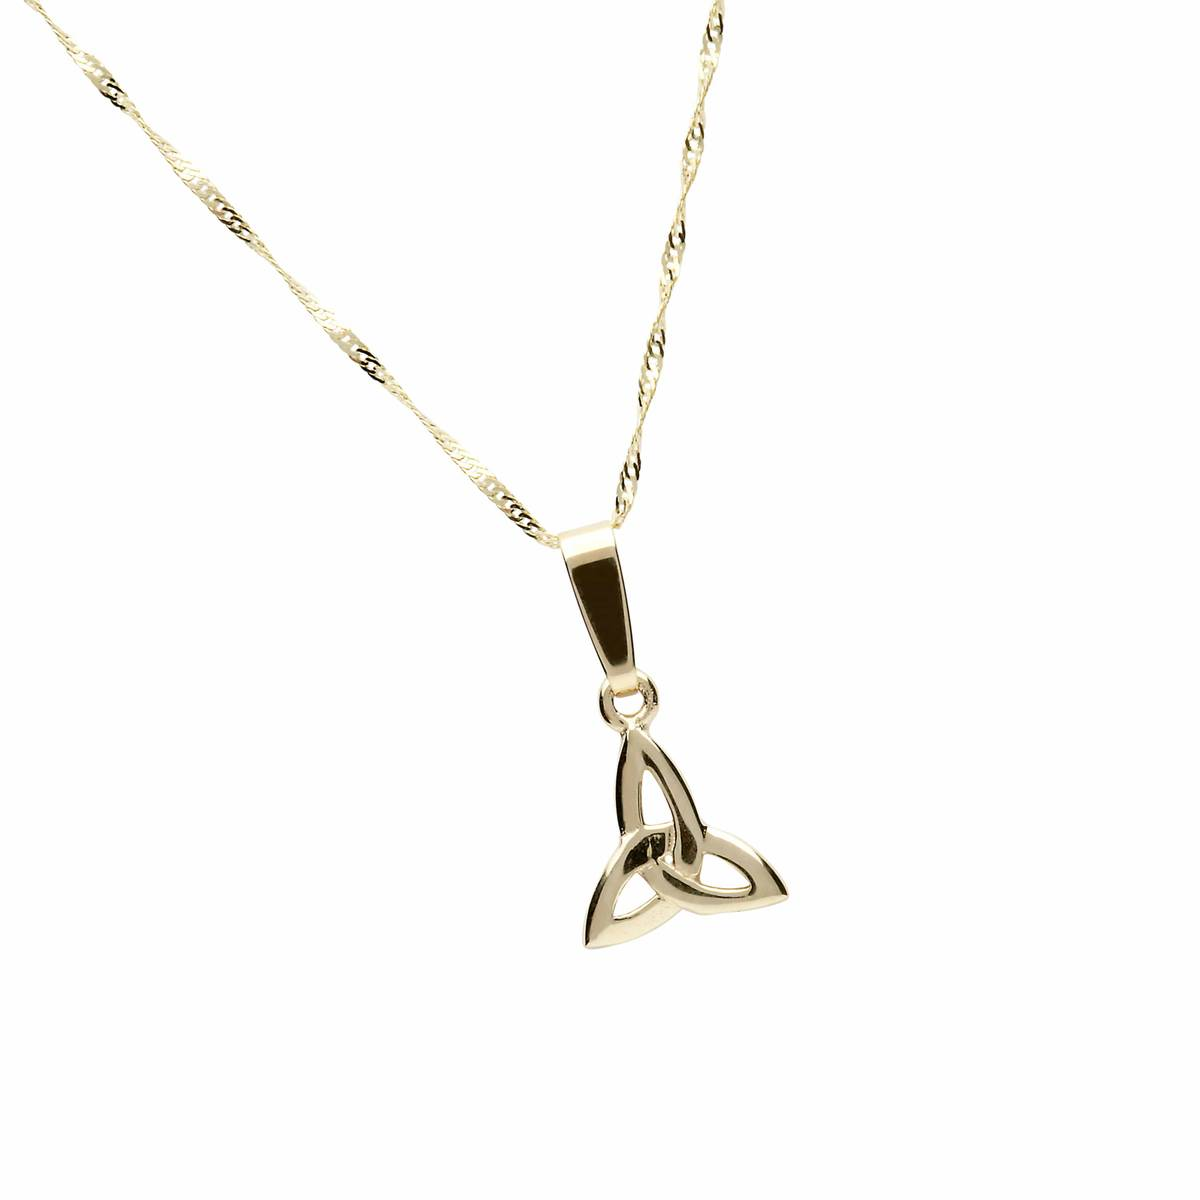 "10 carat yellow gold classic trinity knot pendant on 18"" chain."